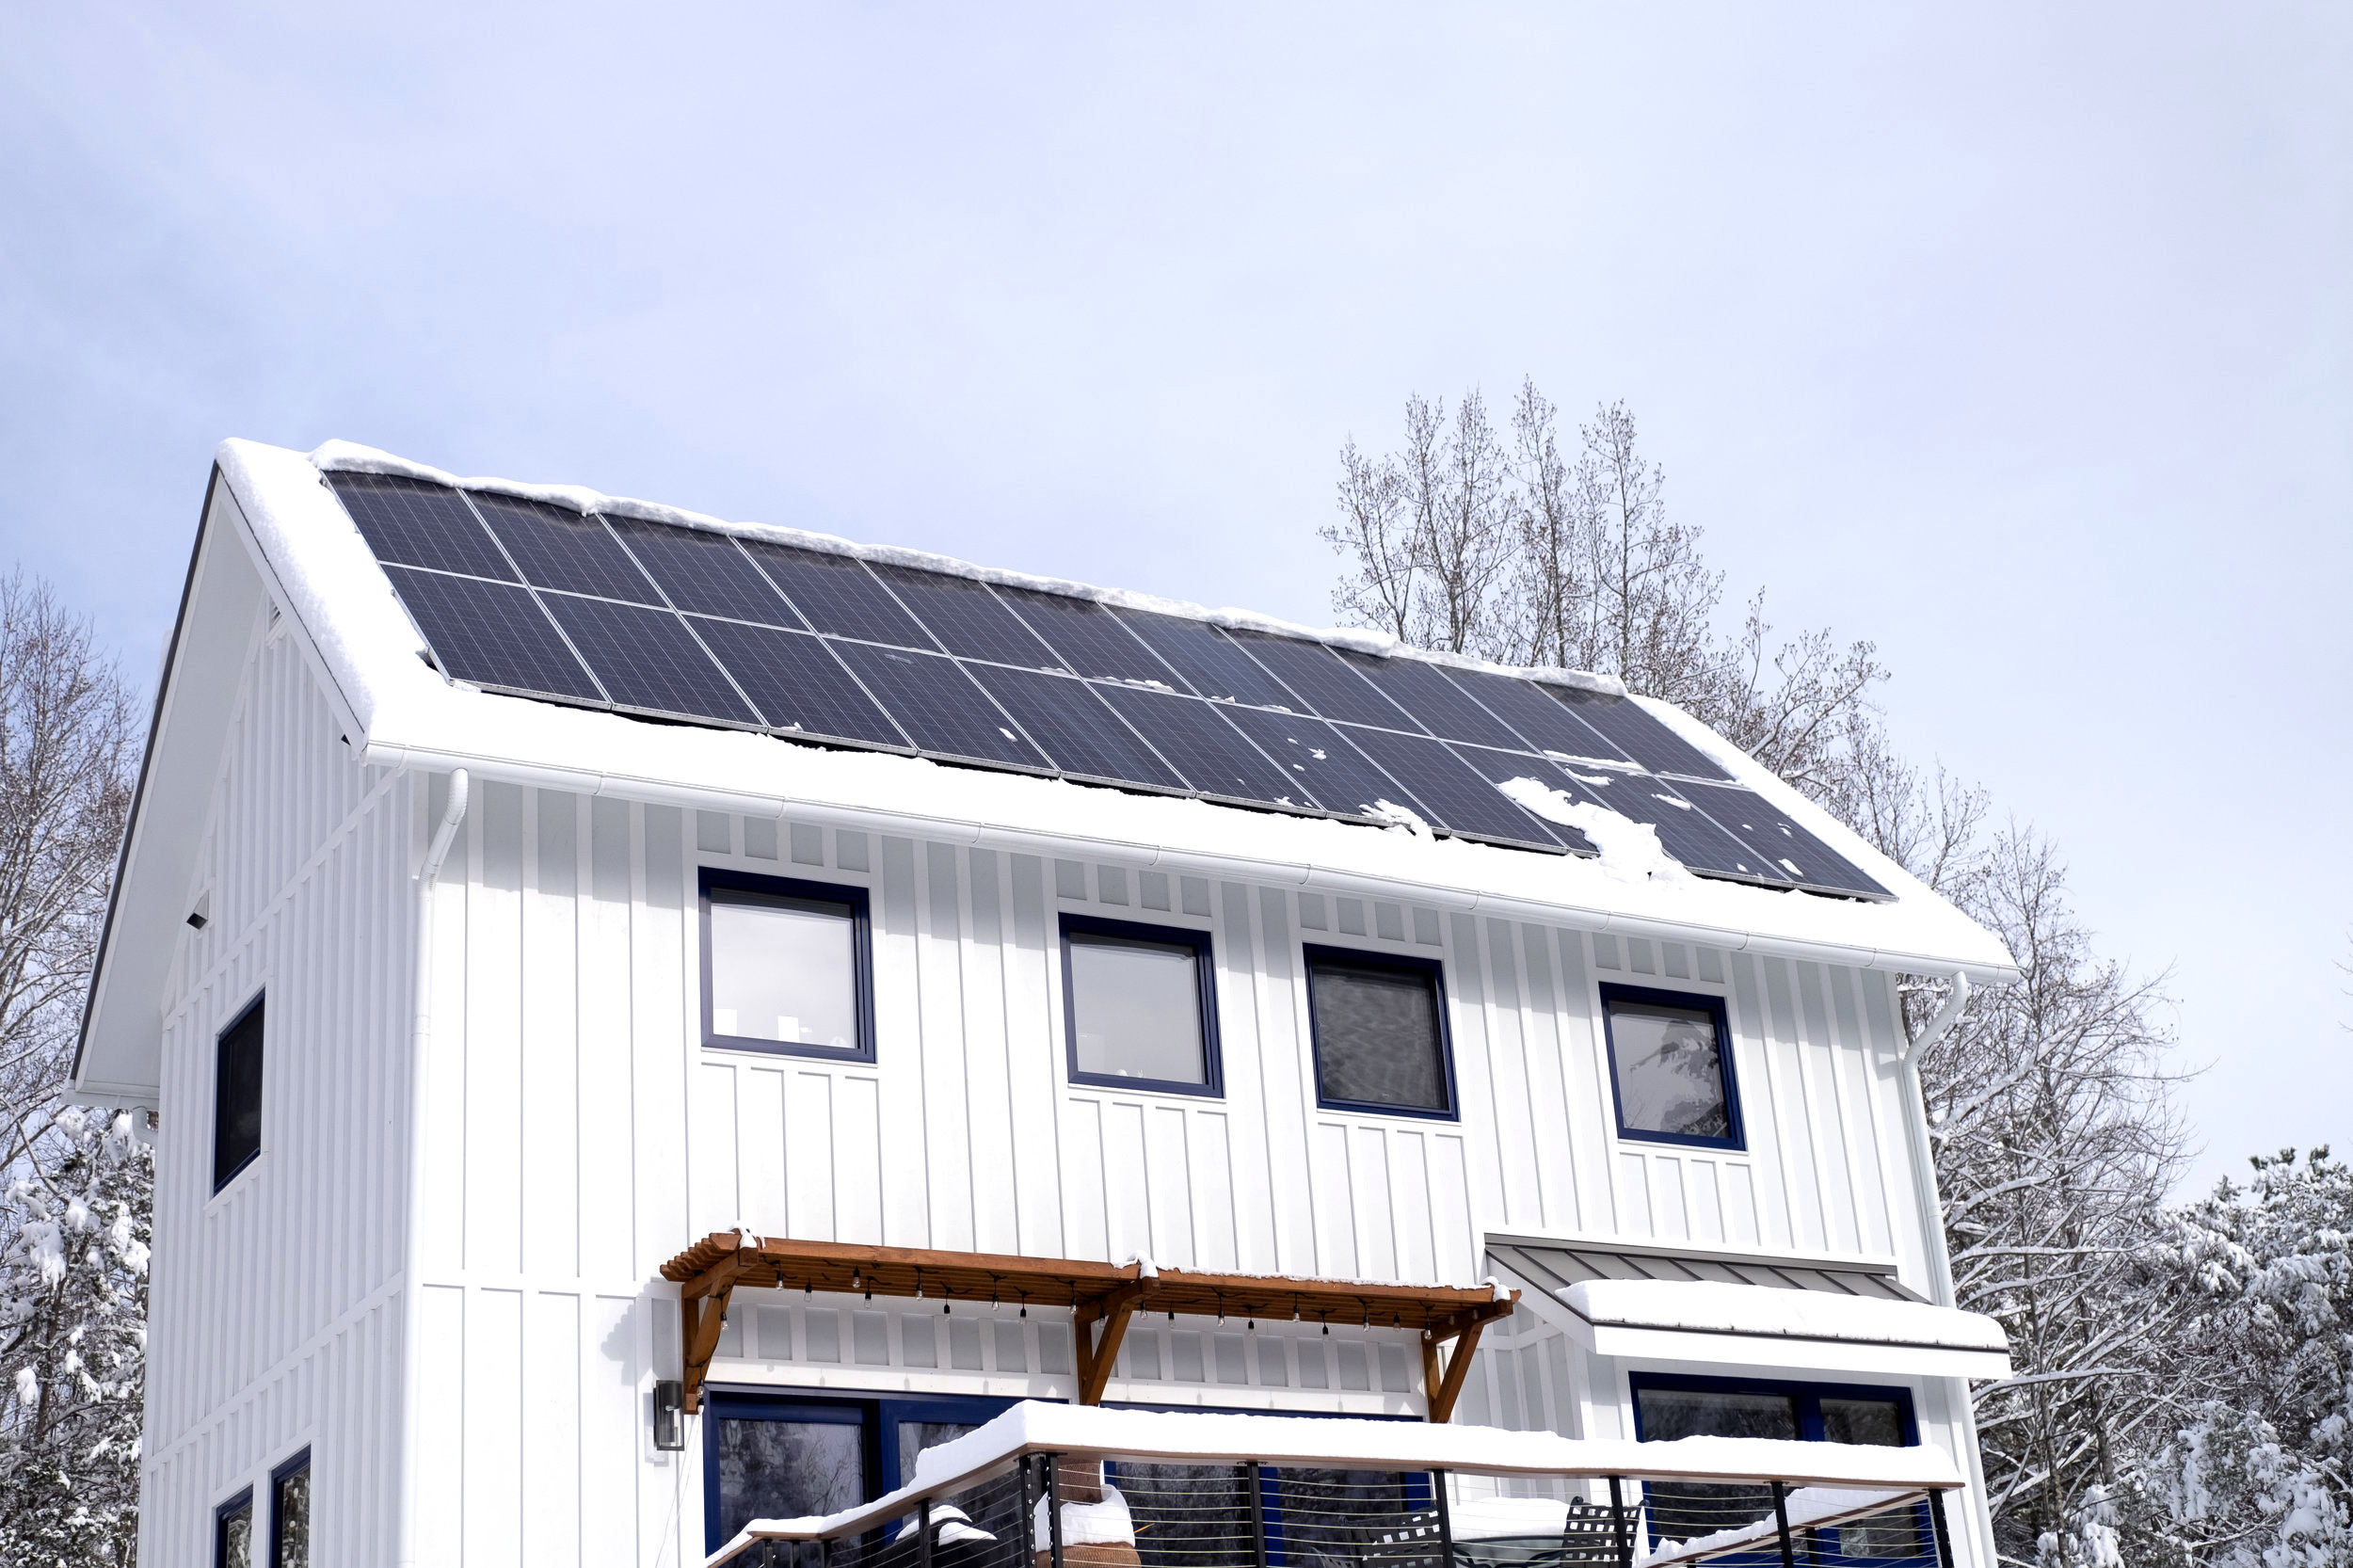 Franks Residence - Photovoltaics in the snow